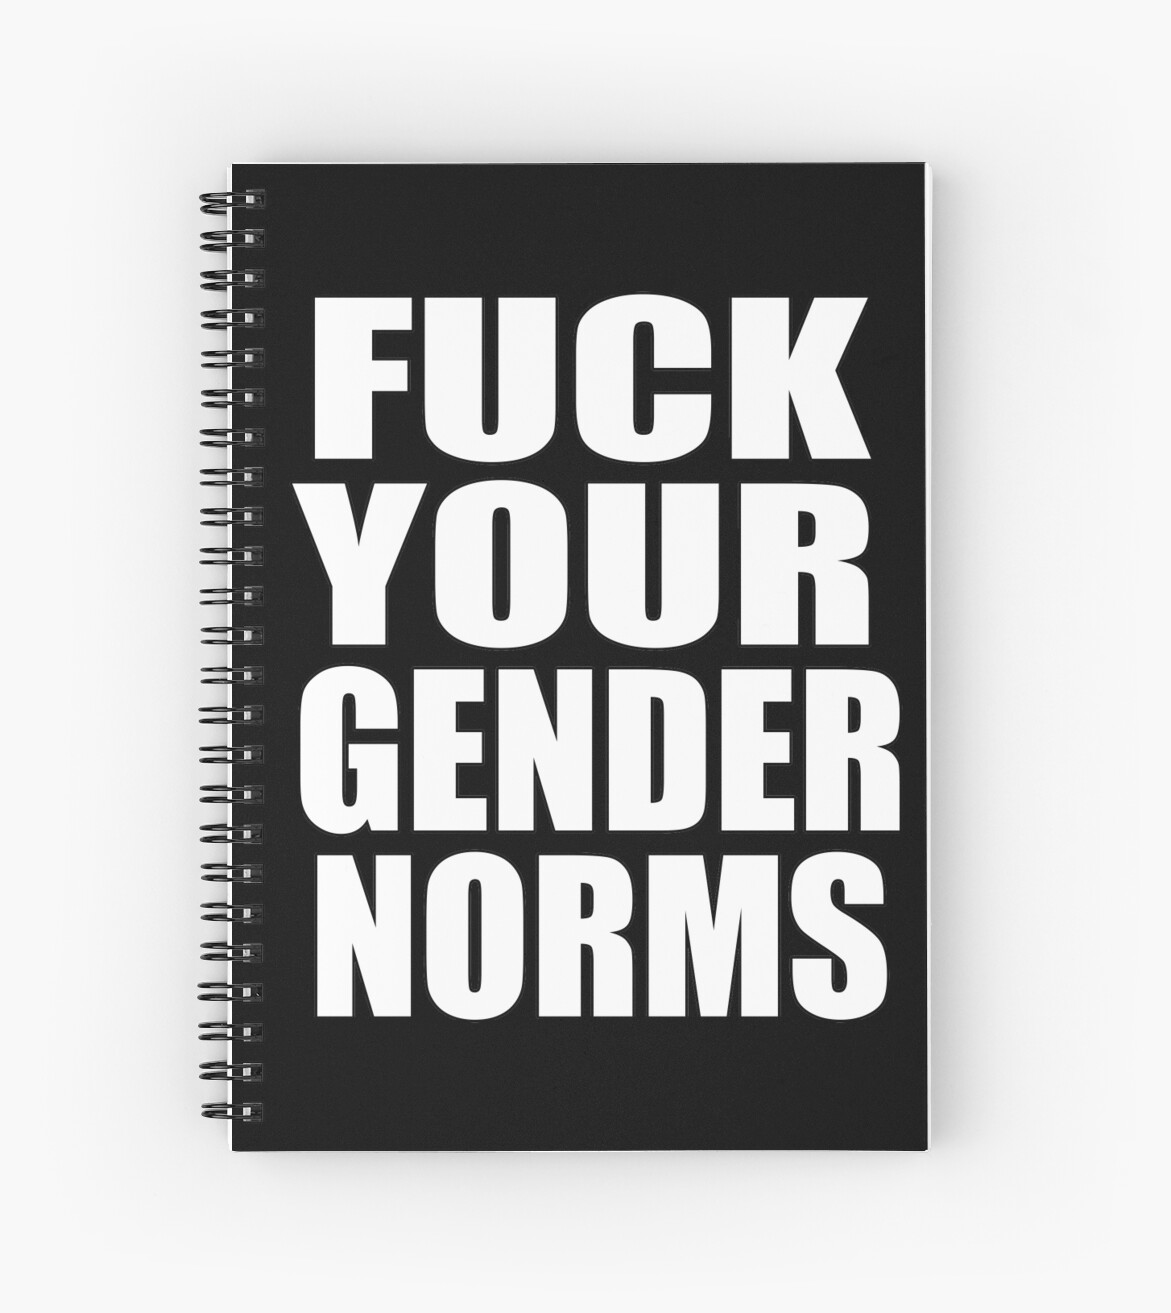 FUCK YOUR GENDER NORMS by nahm80